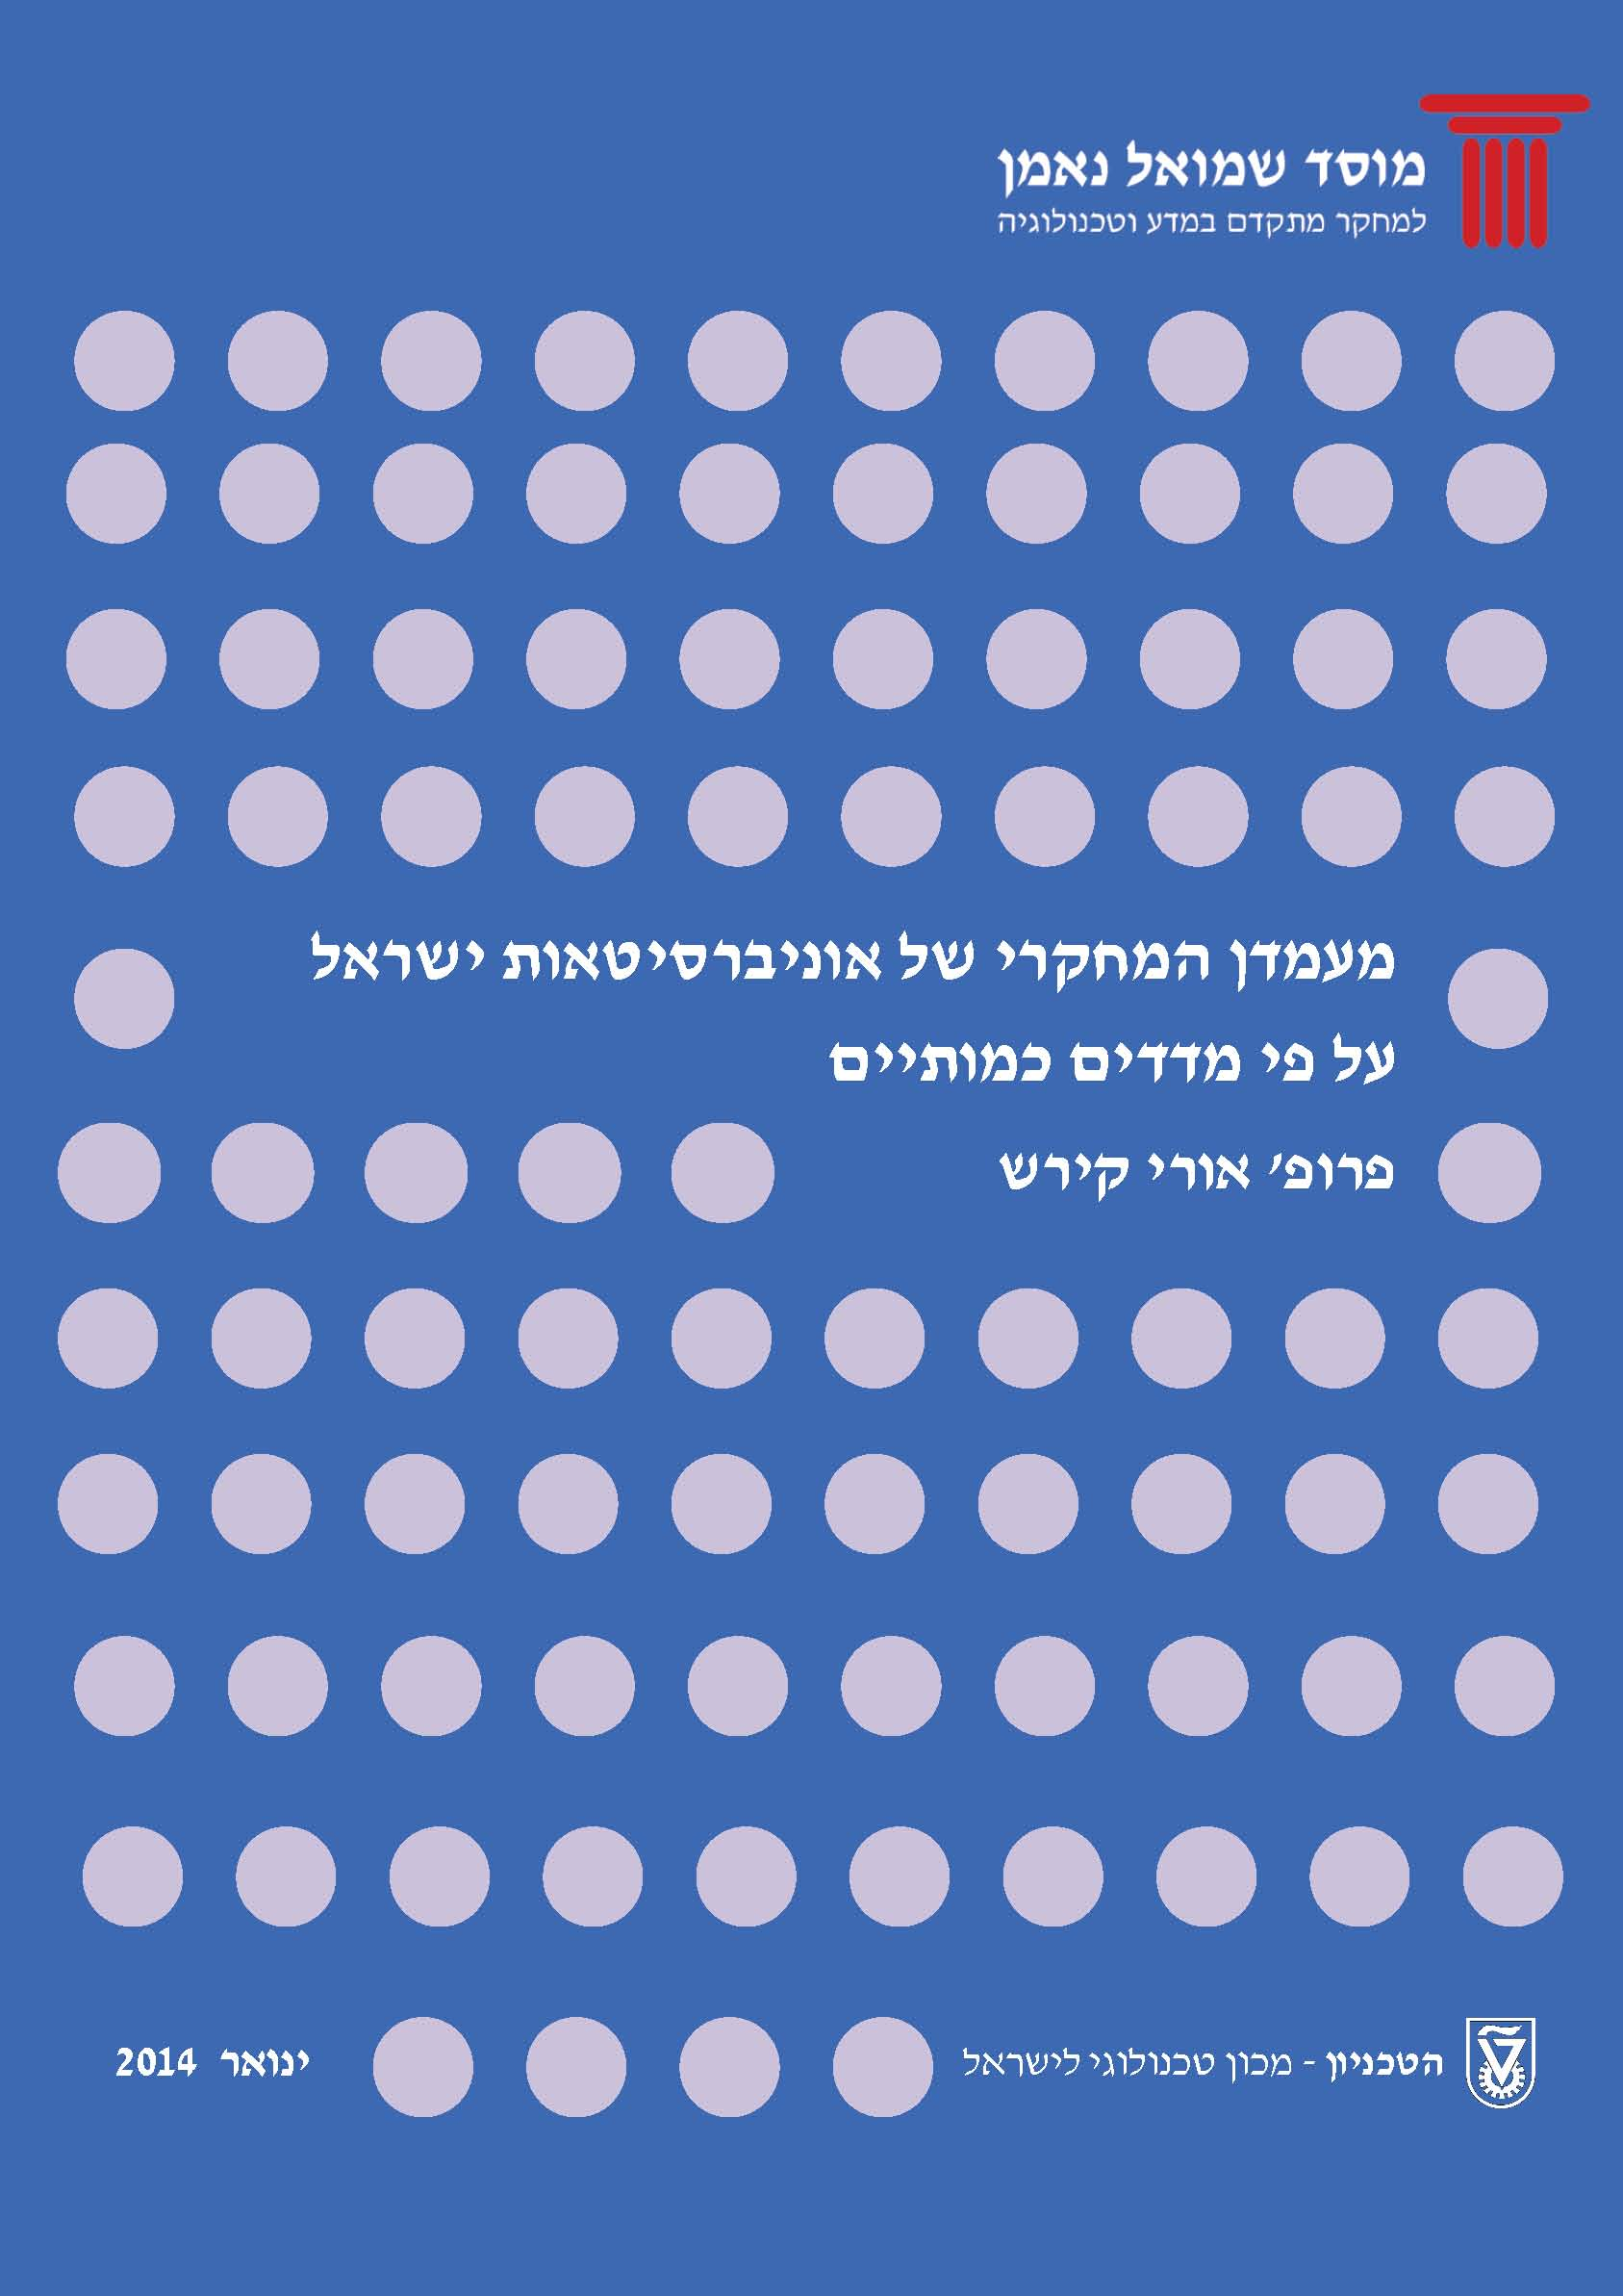 Research Standing of Israeli Universities by Quantitative Indicators